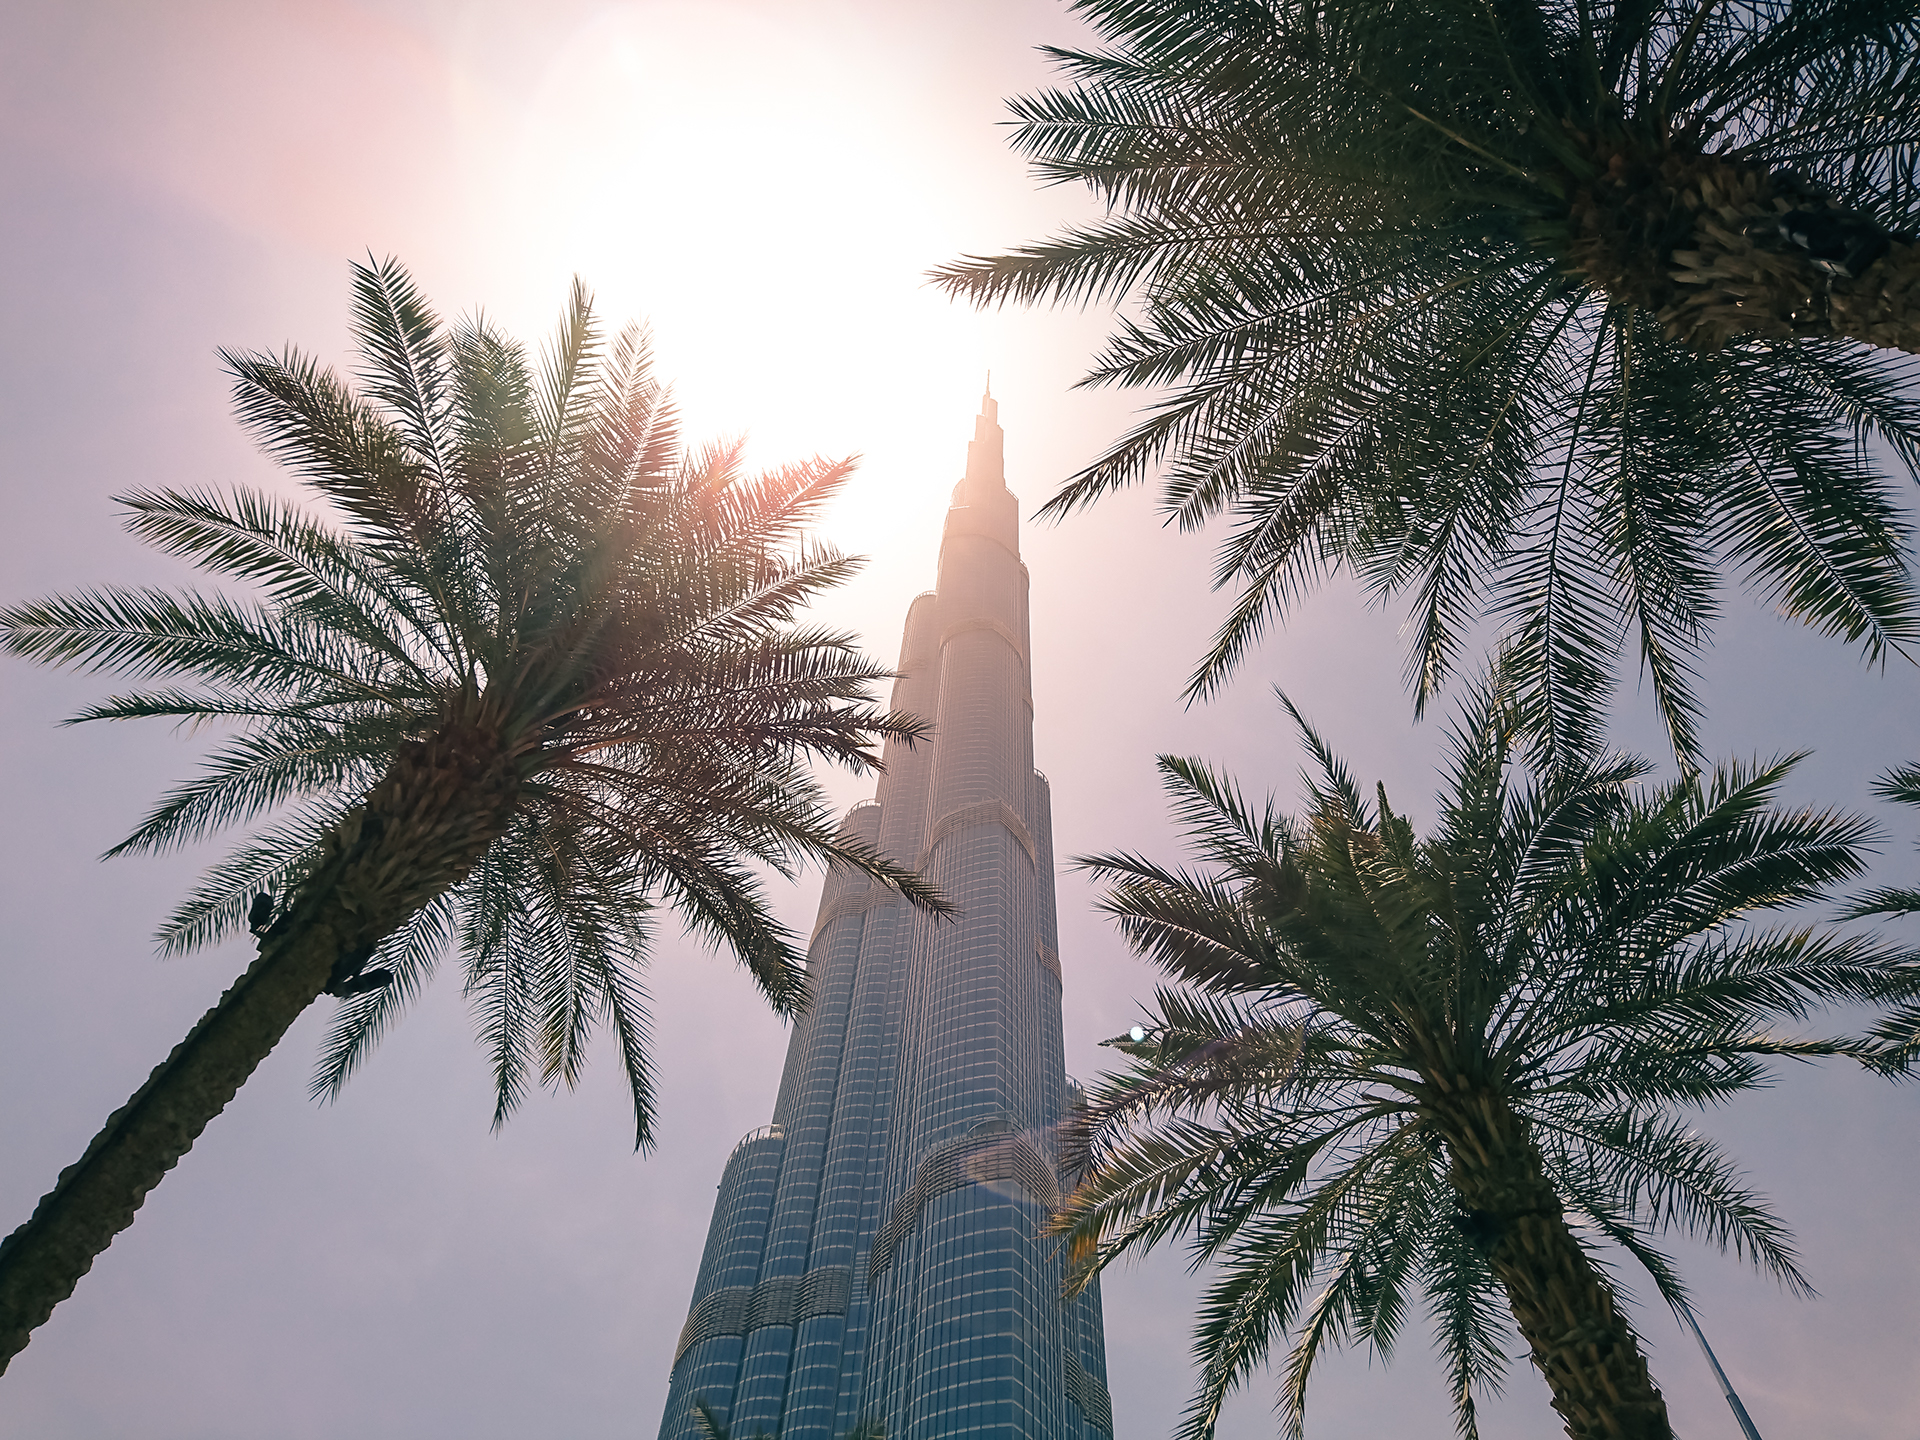 Mobile Photography: Exploring Dubai & the Burj Khalifa